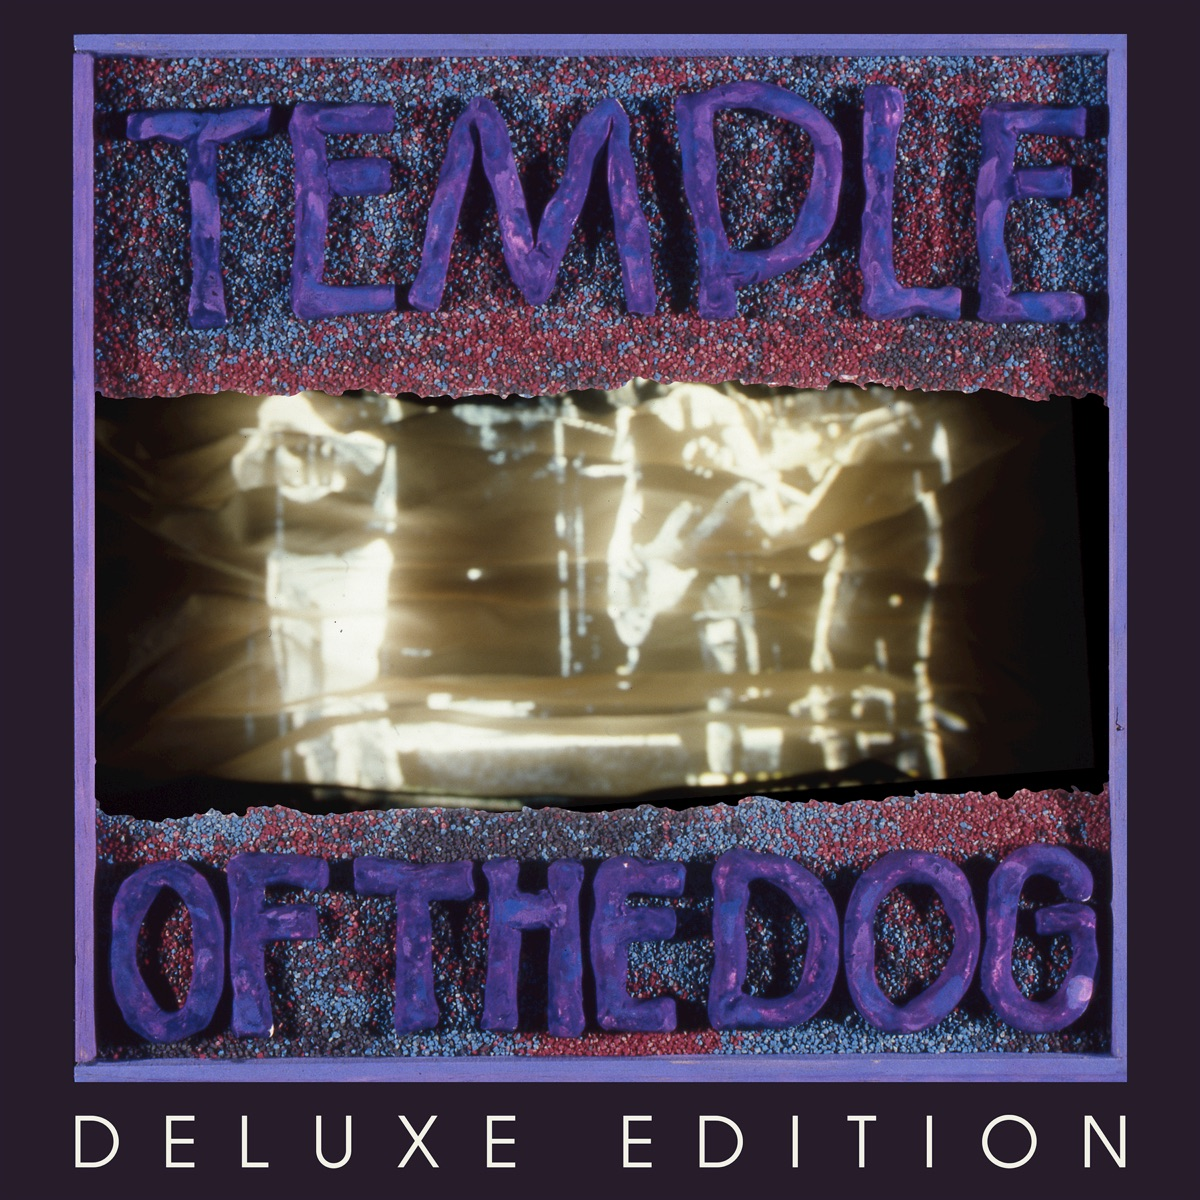 Temple of the Dog Deluxe Edition Temple of the Dog CD cover